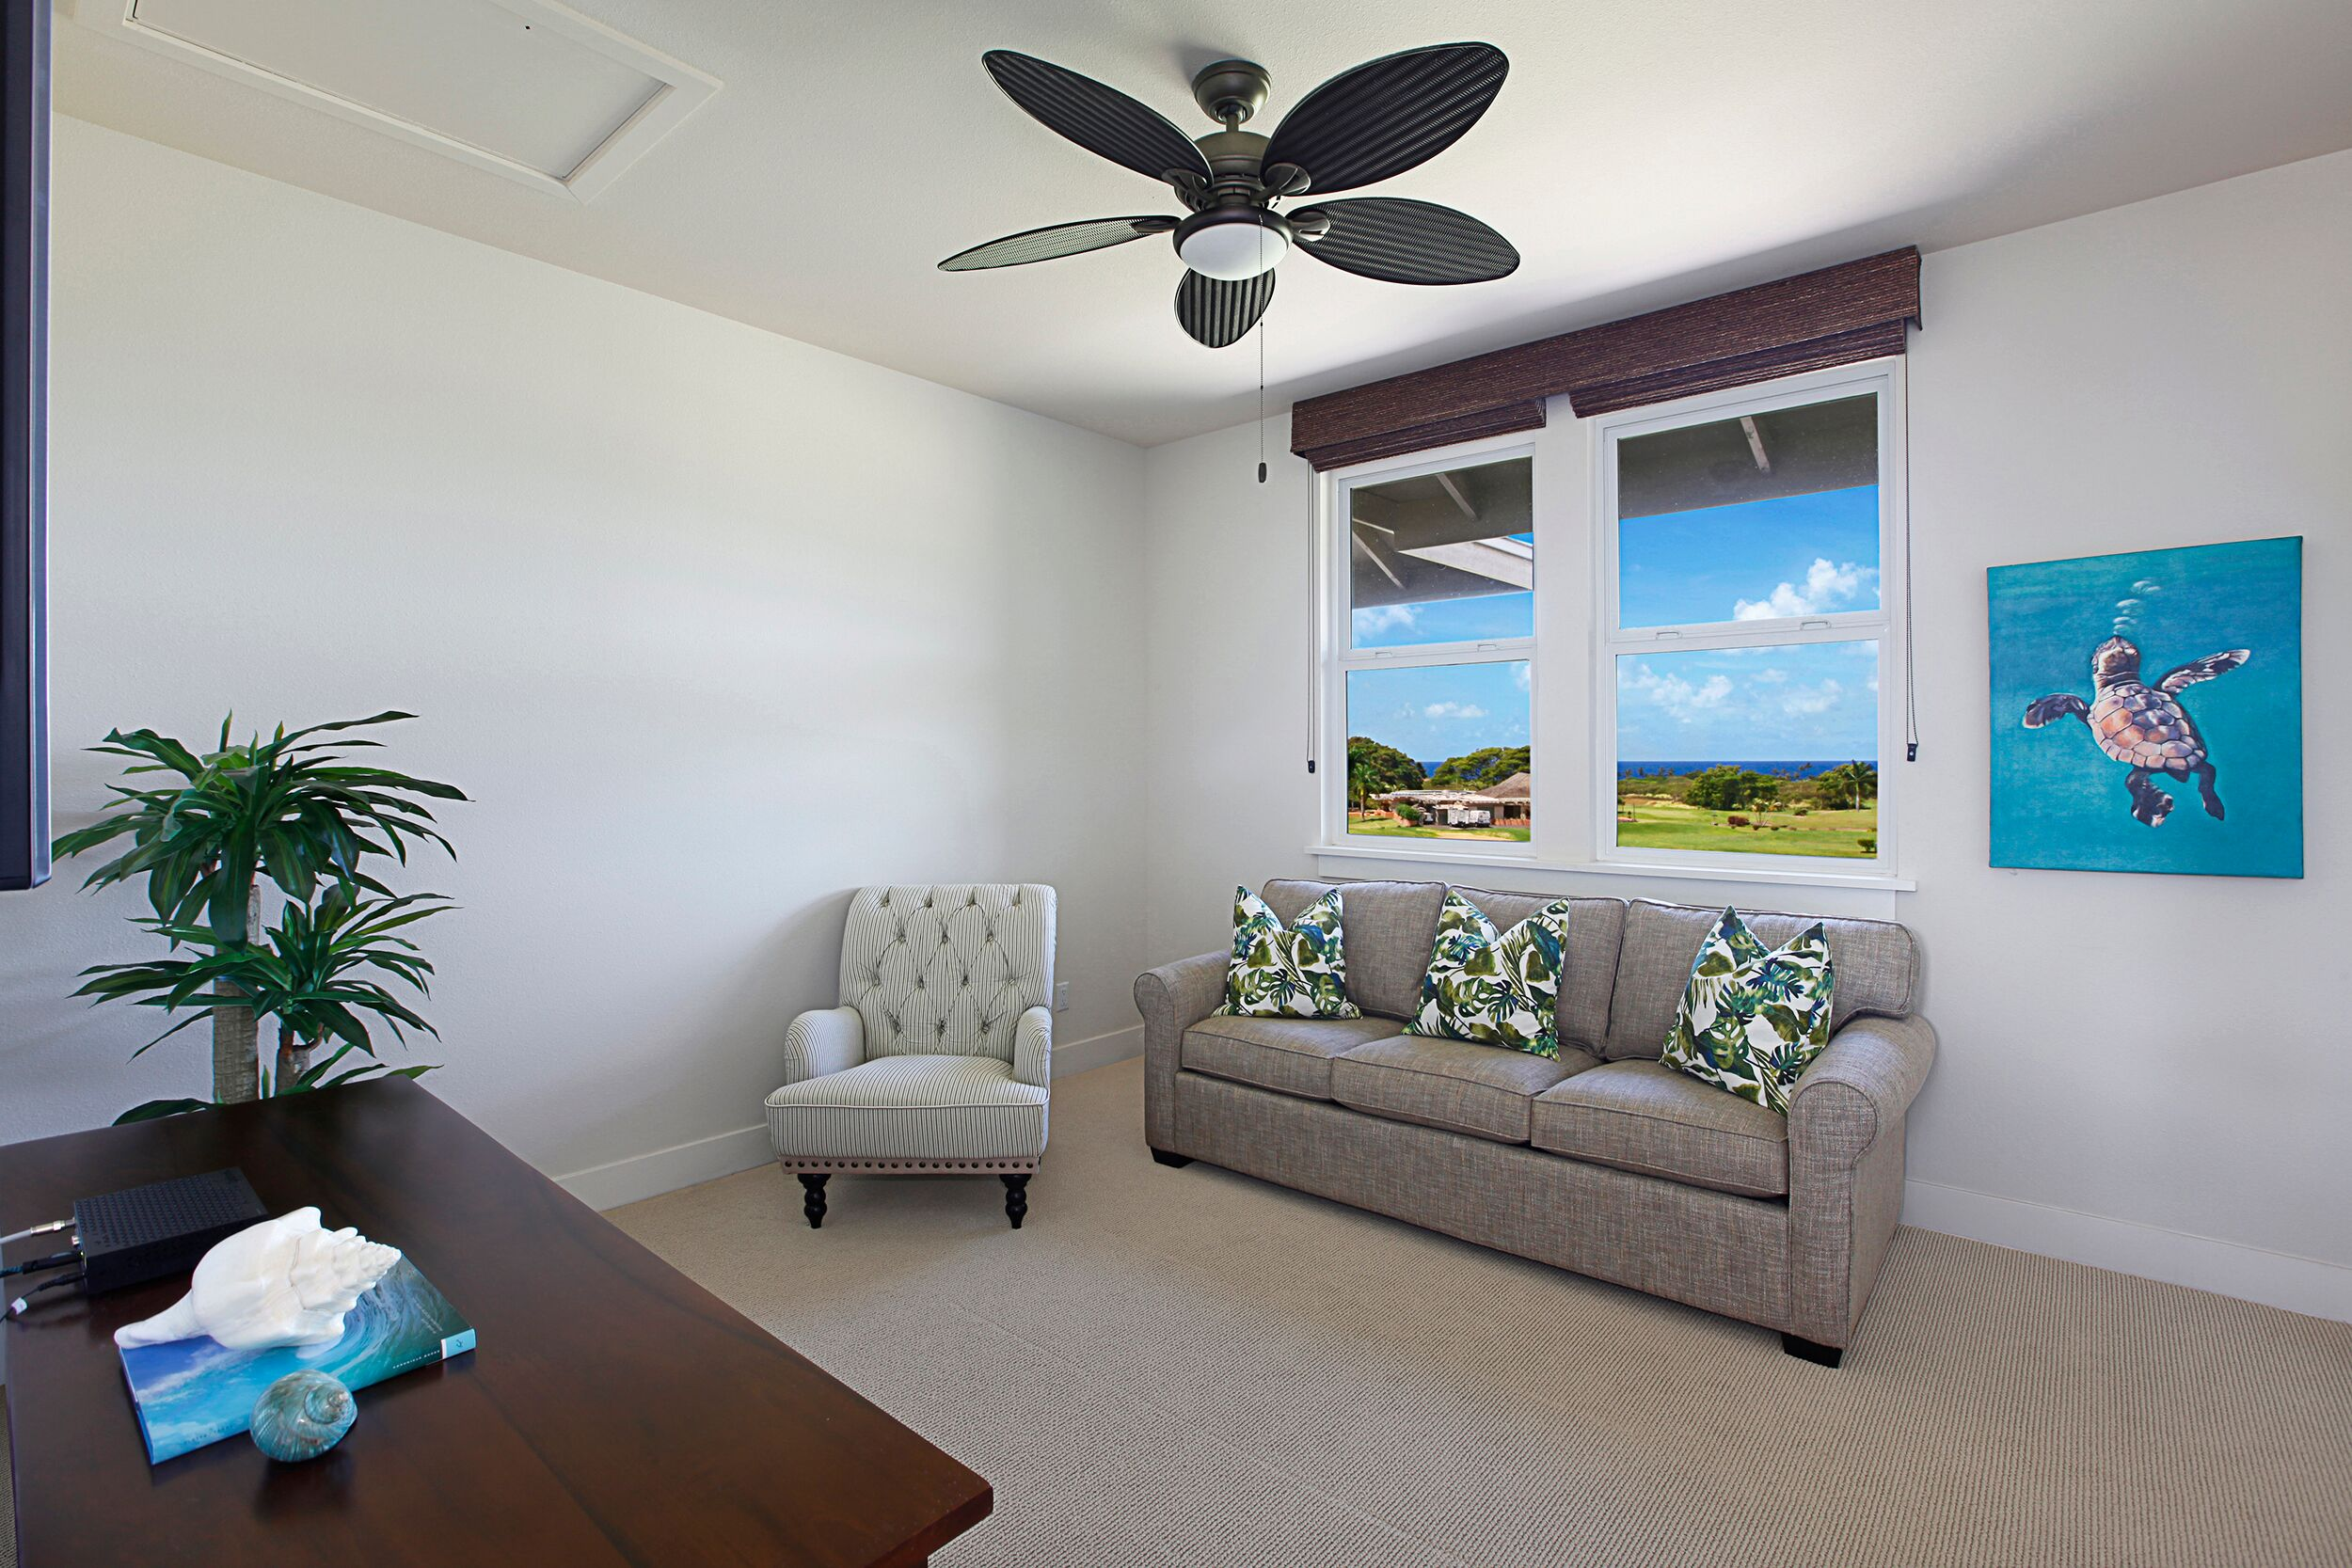 Property Image 2 - Tranquil Luxurious Poipu Abode with Modern Style Décor Throughout